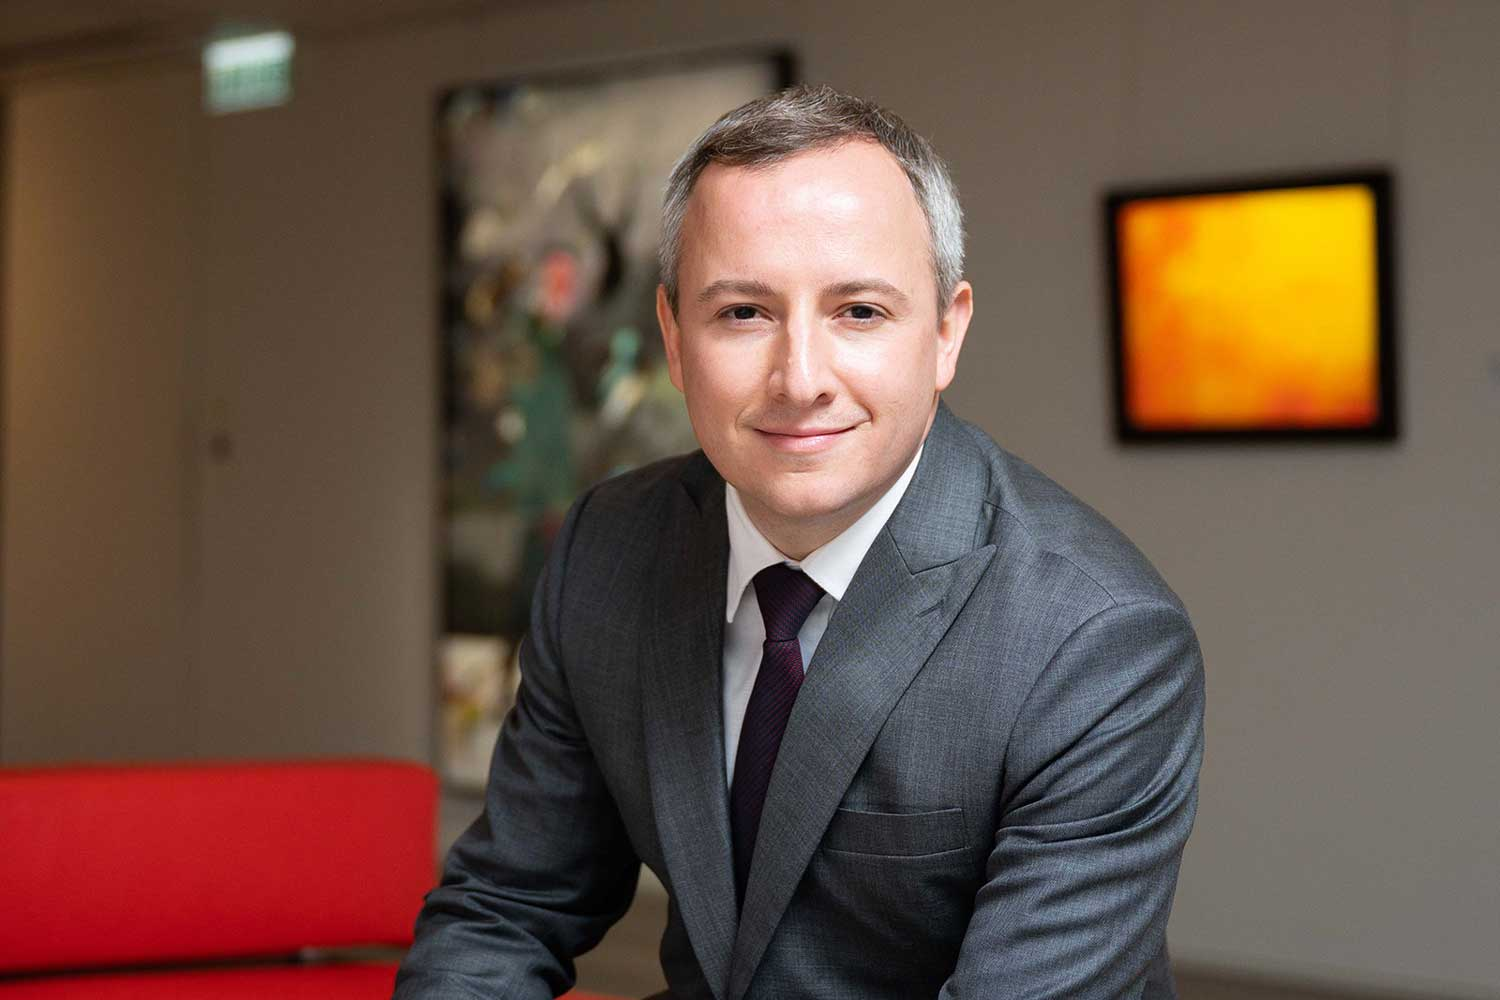 Alexandre Bigler, vice president and head of watches for Christie's Asia Pacific